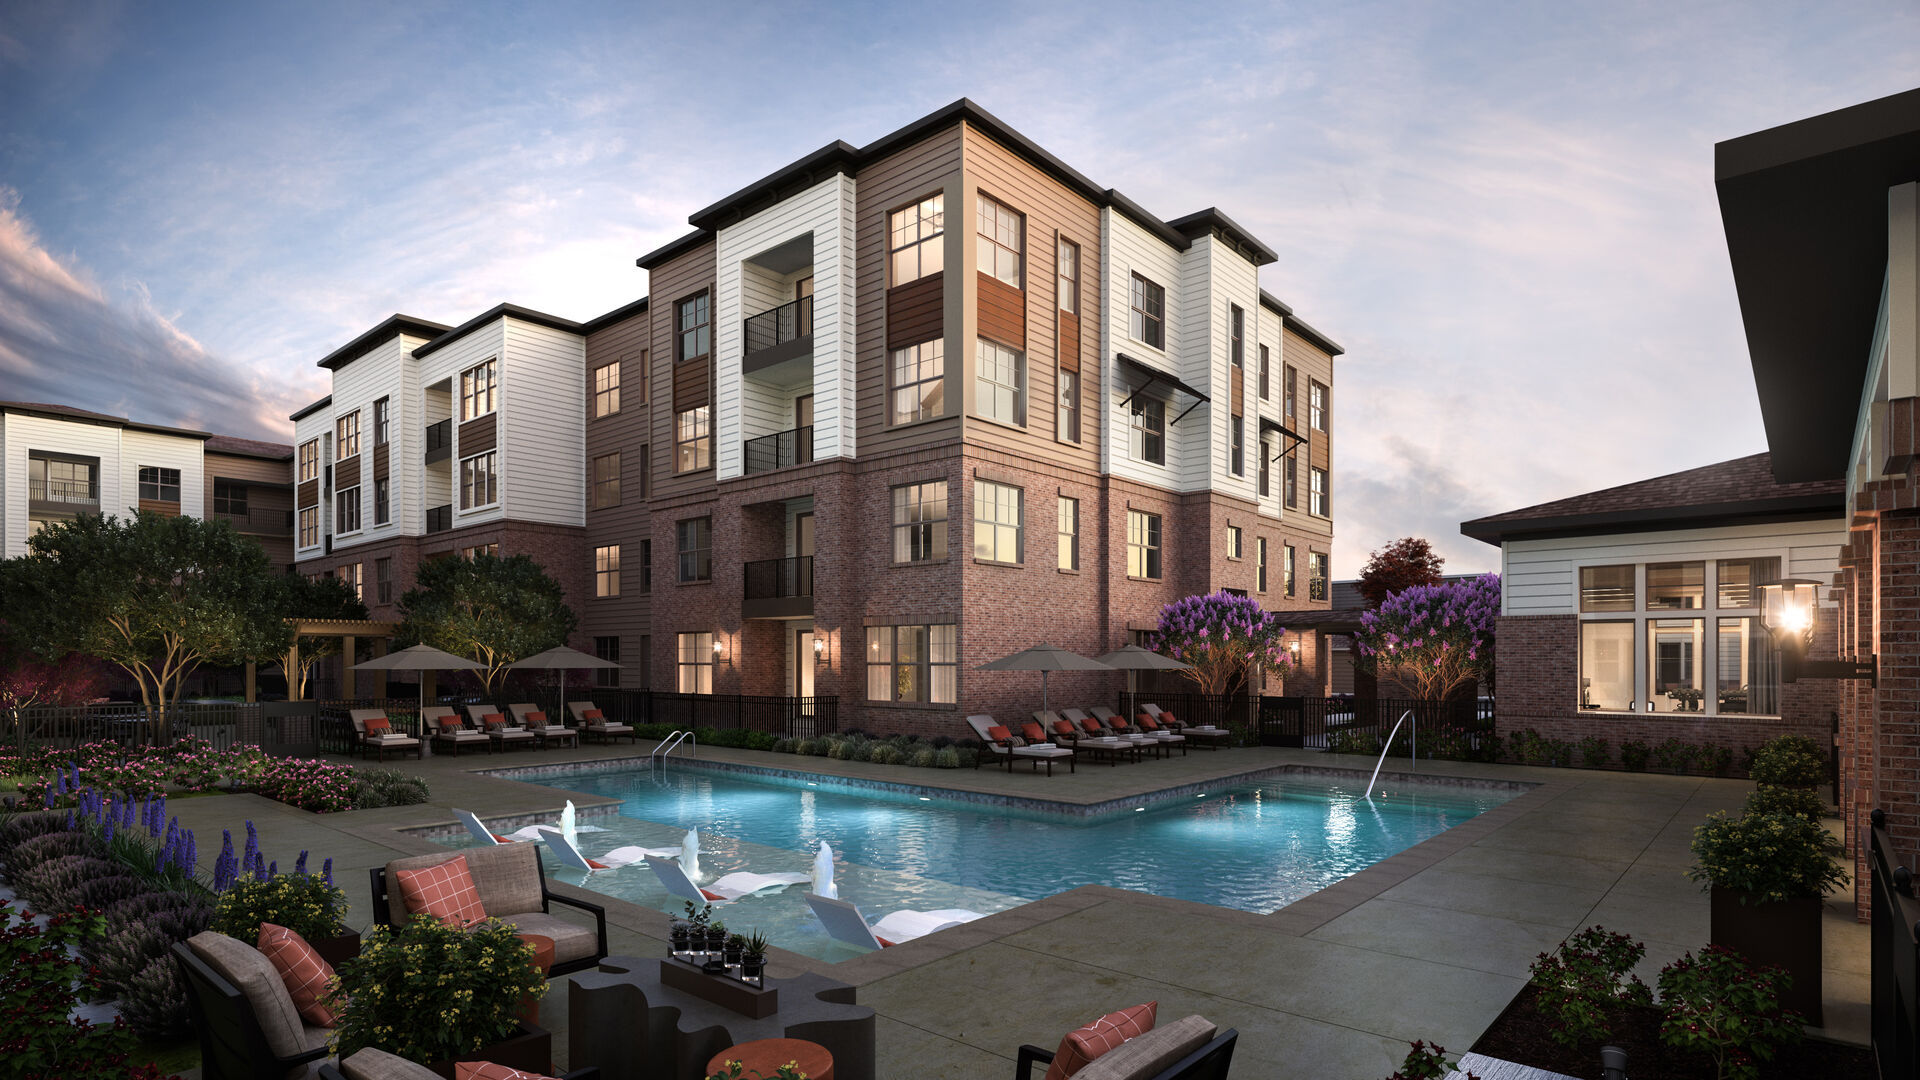 Greystar Announces Inaugural Album Keller Ranch Active Adult Community Designed to Provide Residents Carefree Living